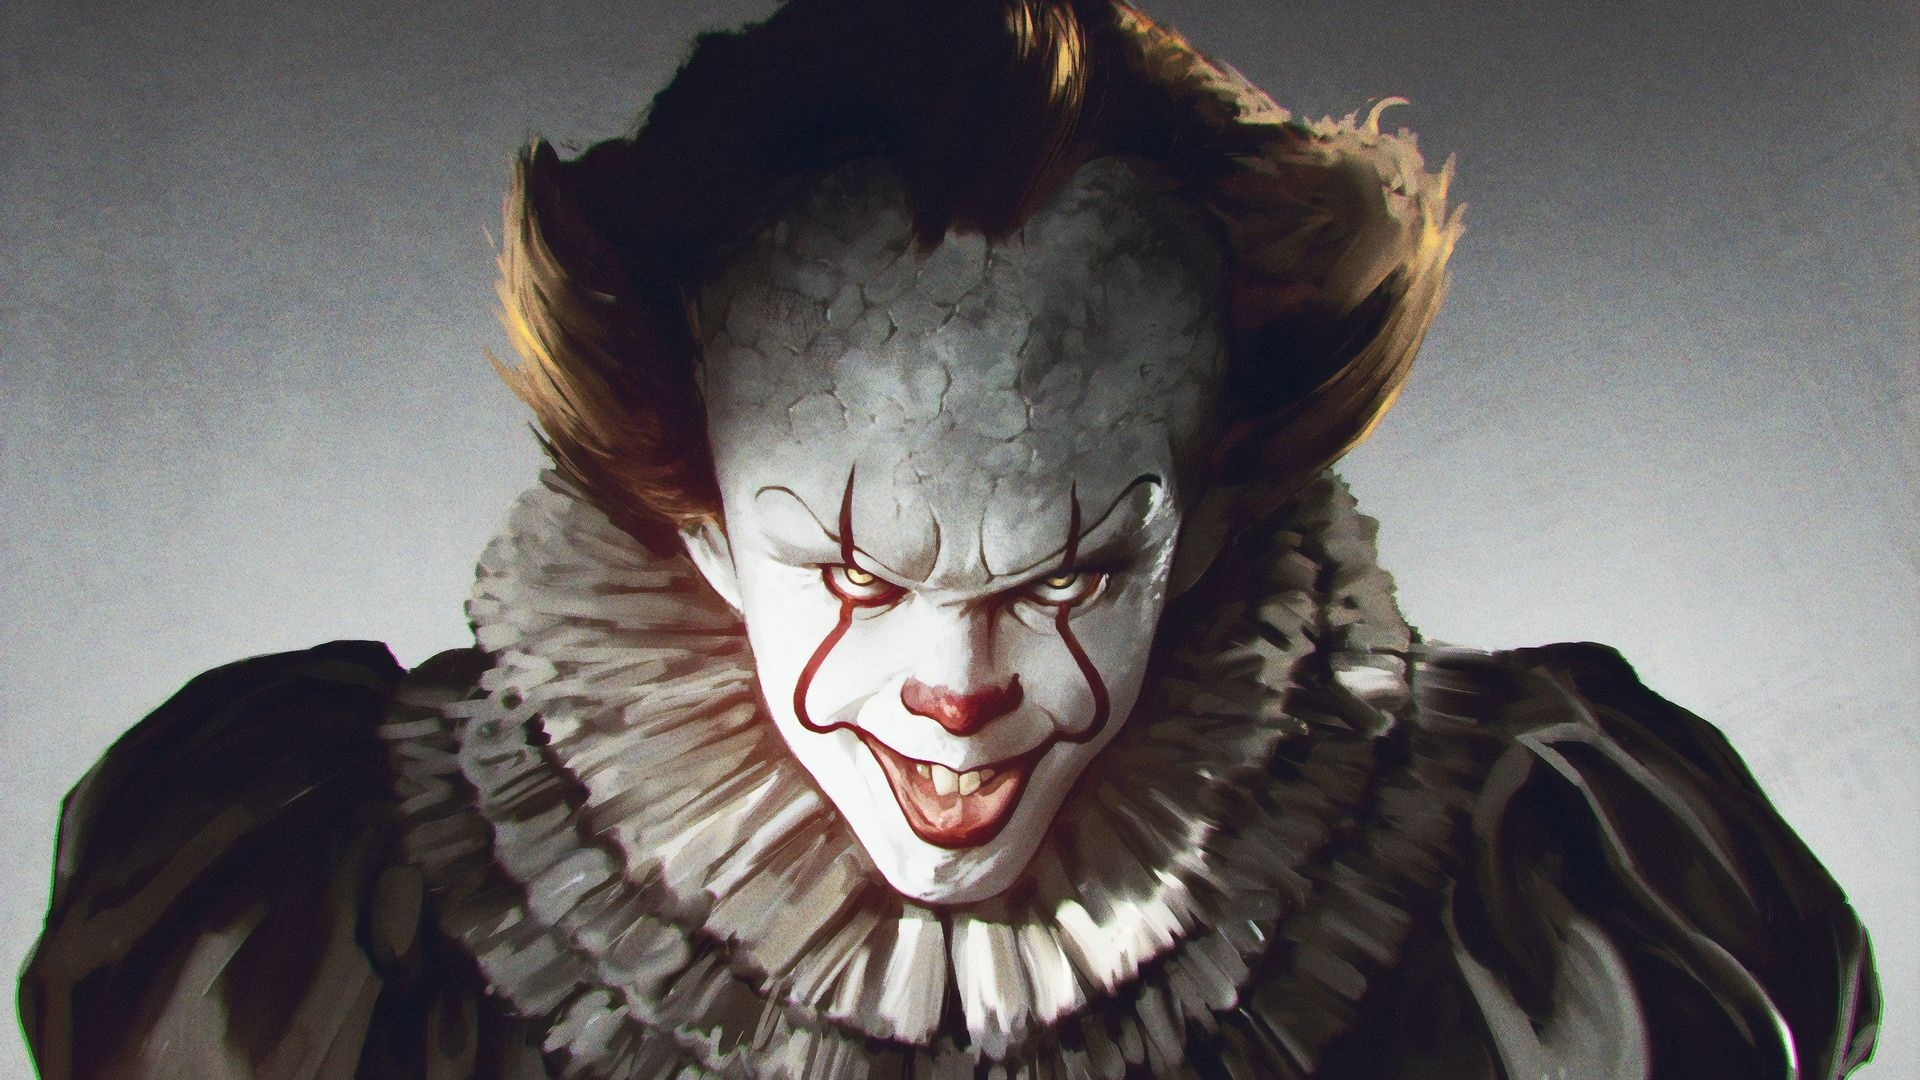 Pennywise free background